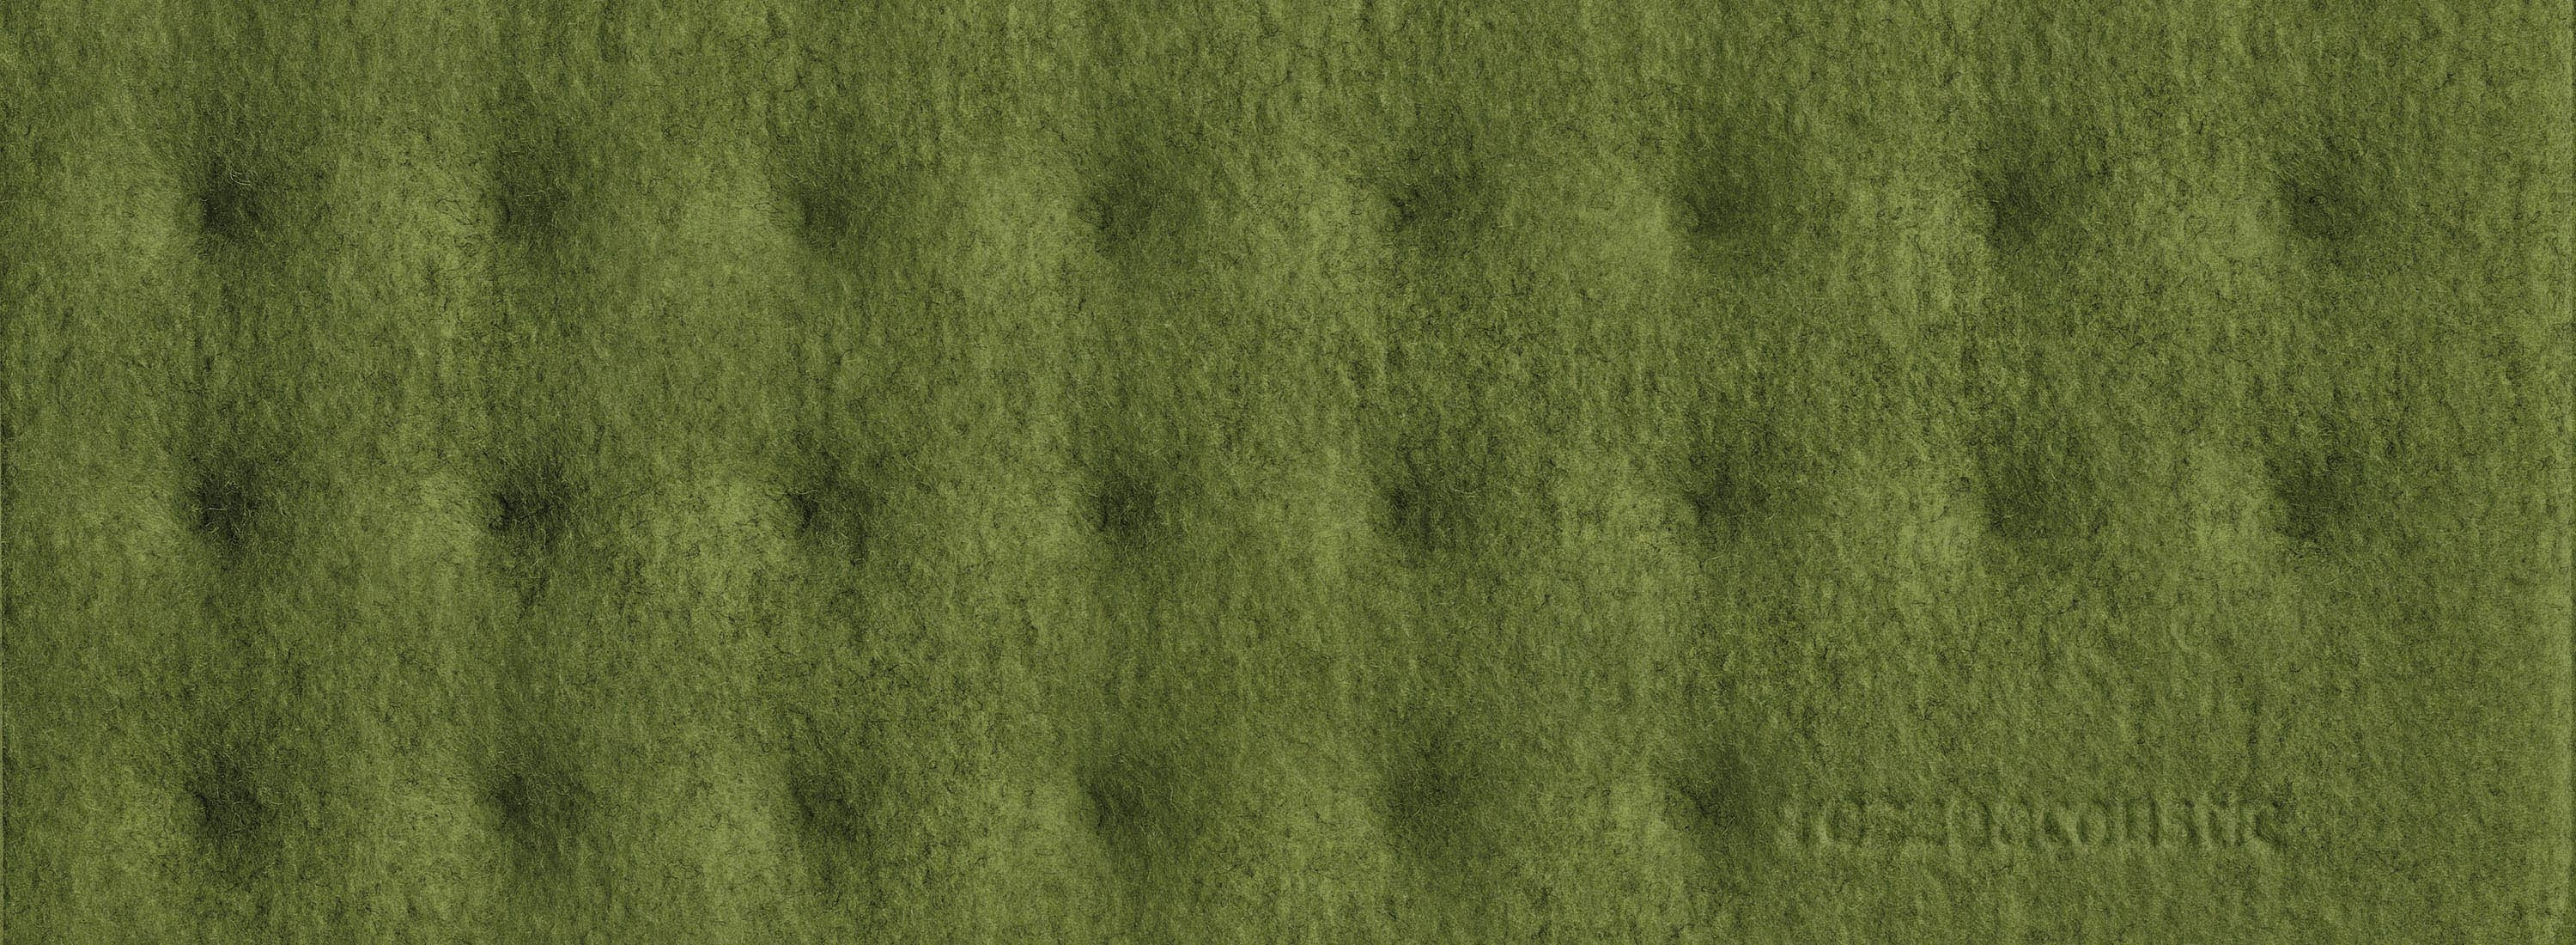 Rossoacoustic PAD Q 1200 Basic, 1200 x 1200 x 25 mm, vineyard